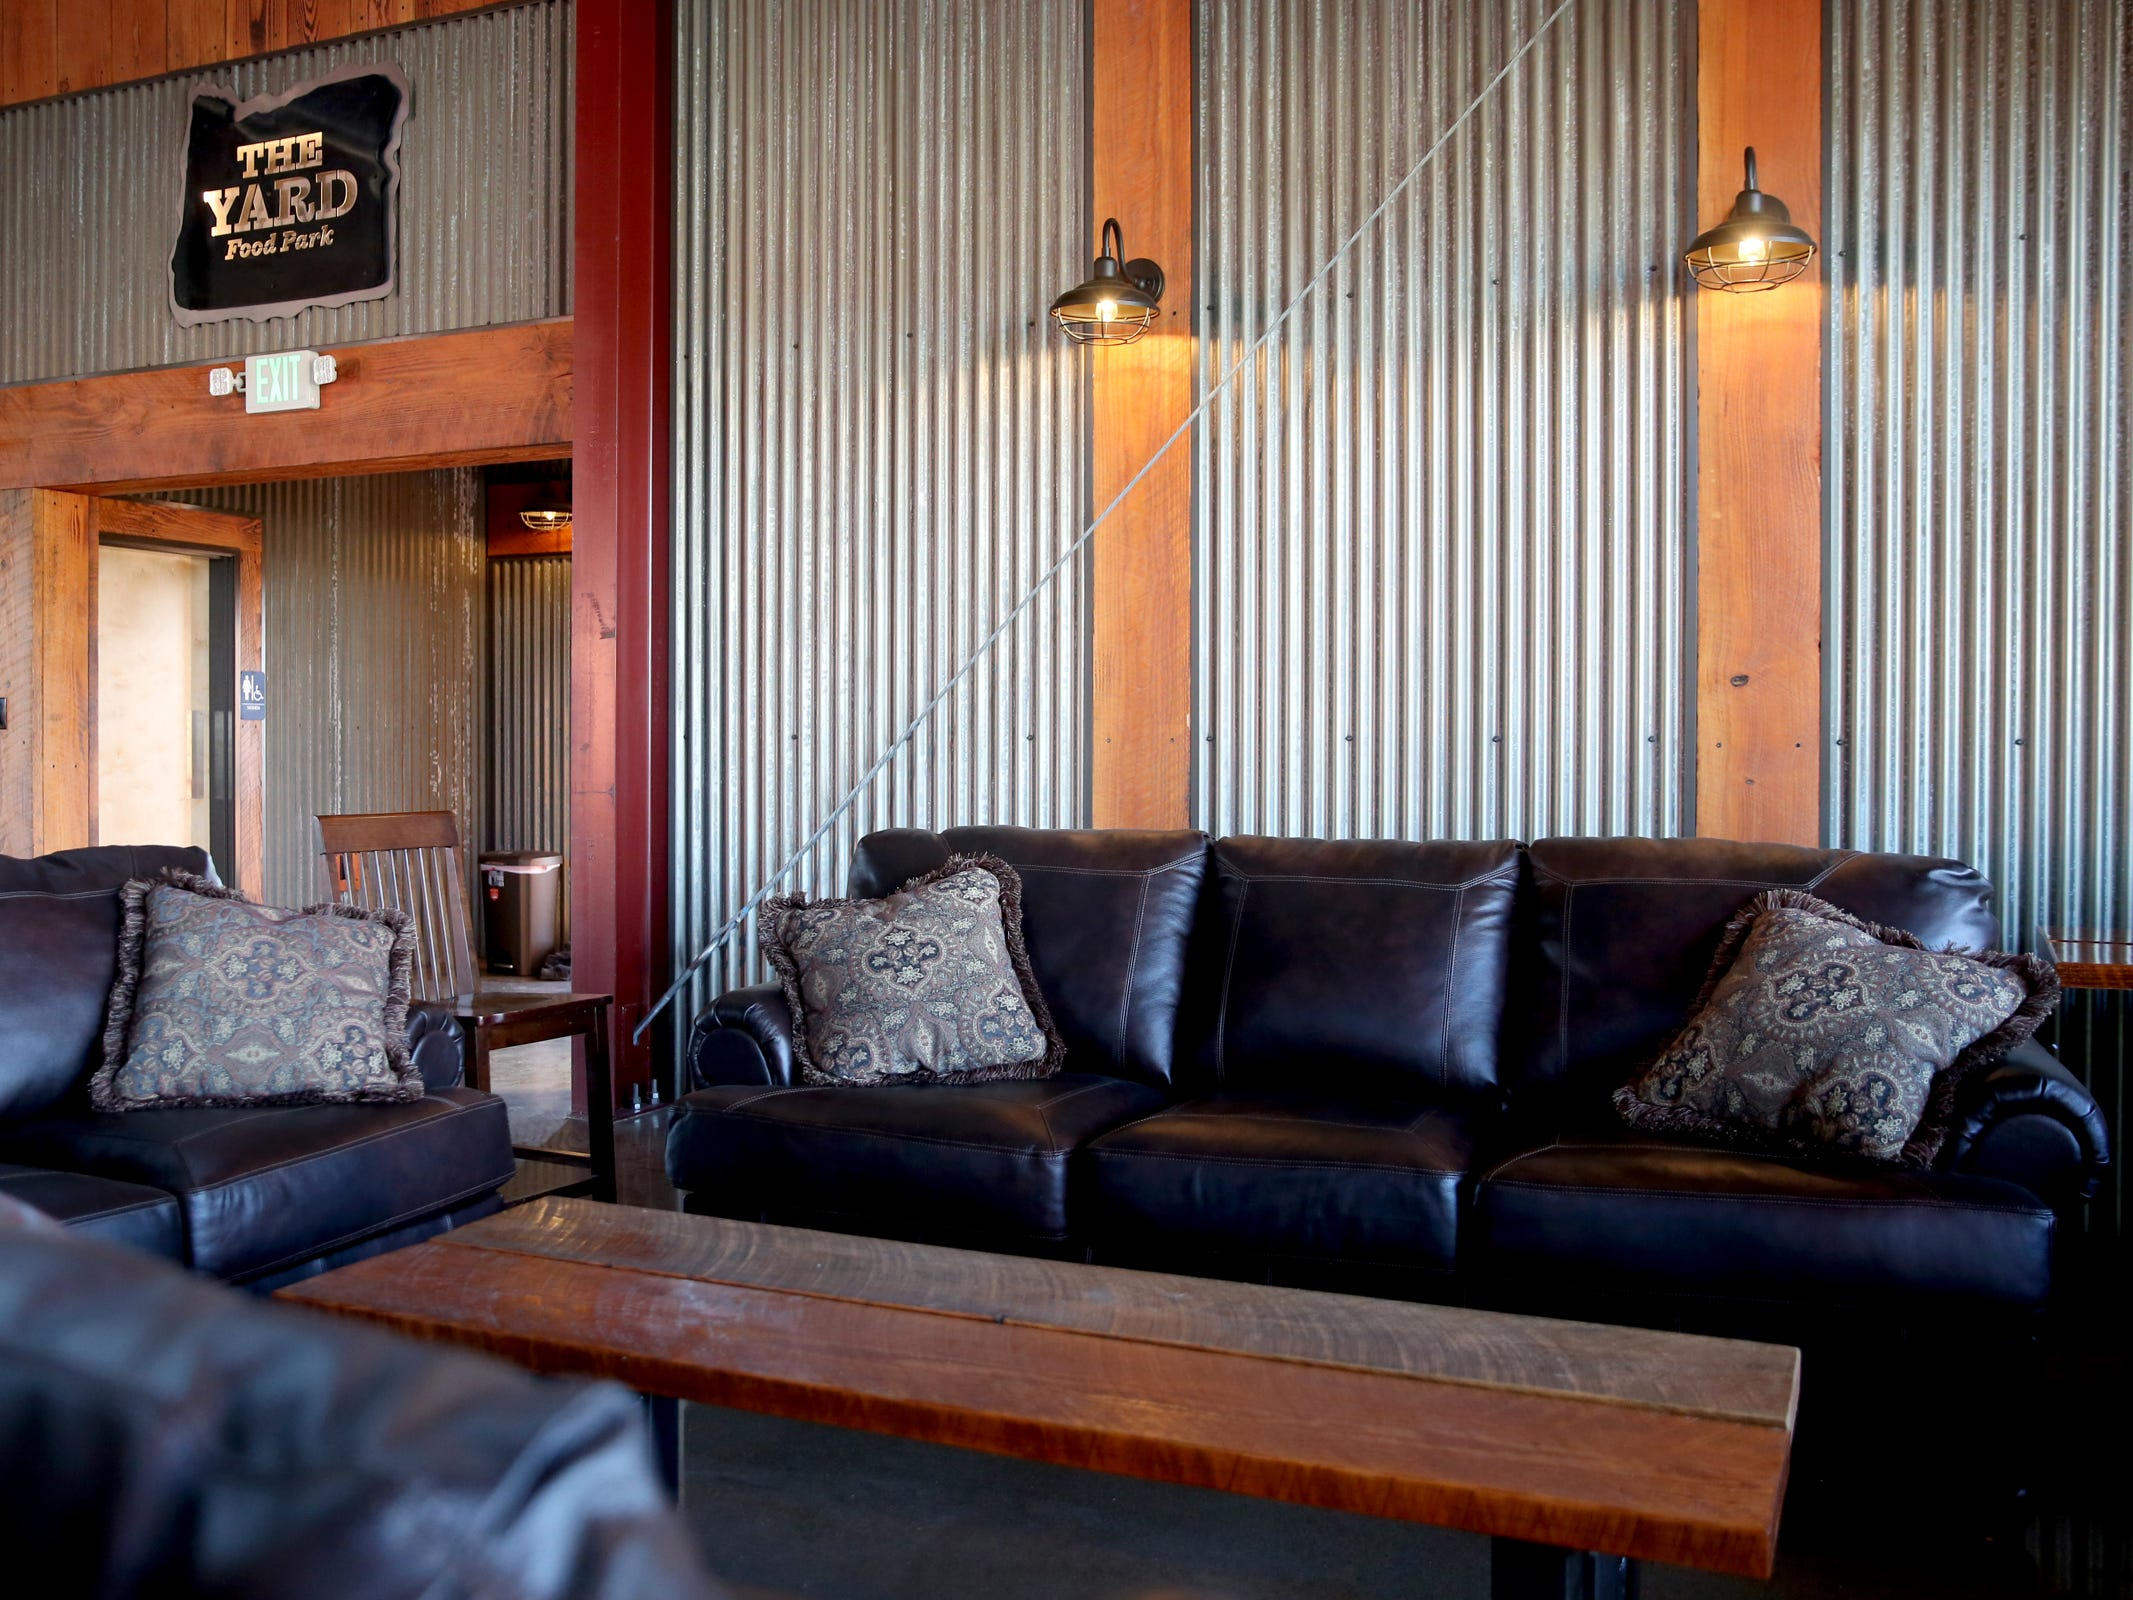 A seating area with couches at The Yard Food Park in Salem on Wednesday, Dec. 5, 2018. When it opens, The Yard will essentially be part coffee shop, part bar, part event space, and part food truck food court.